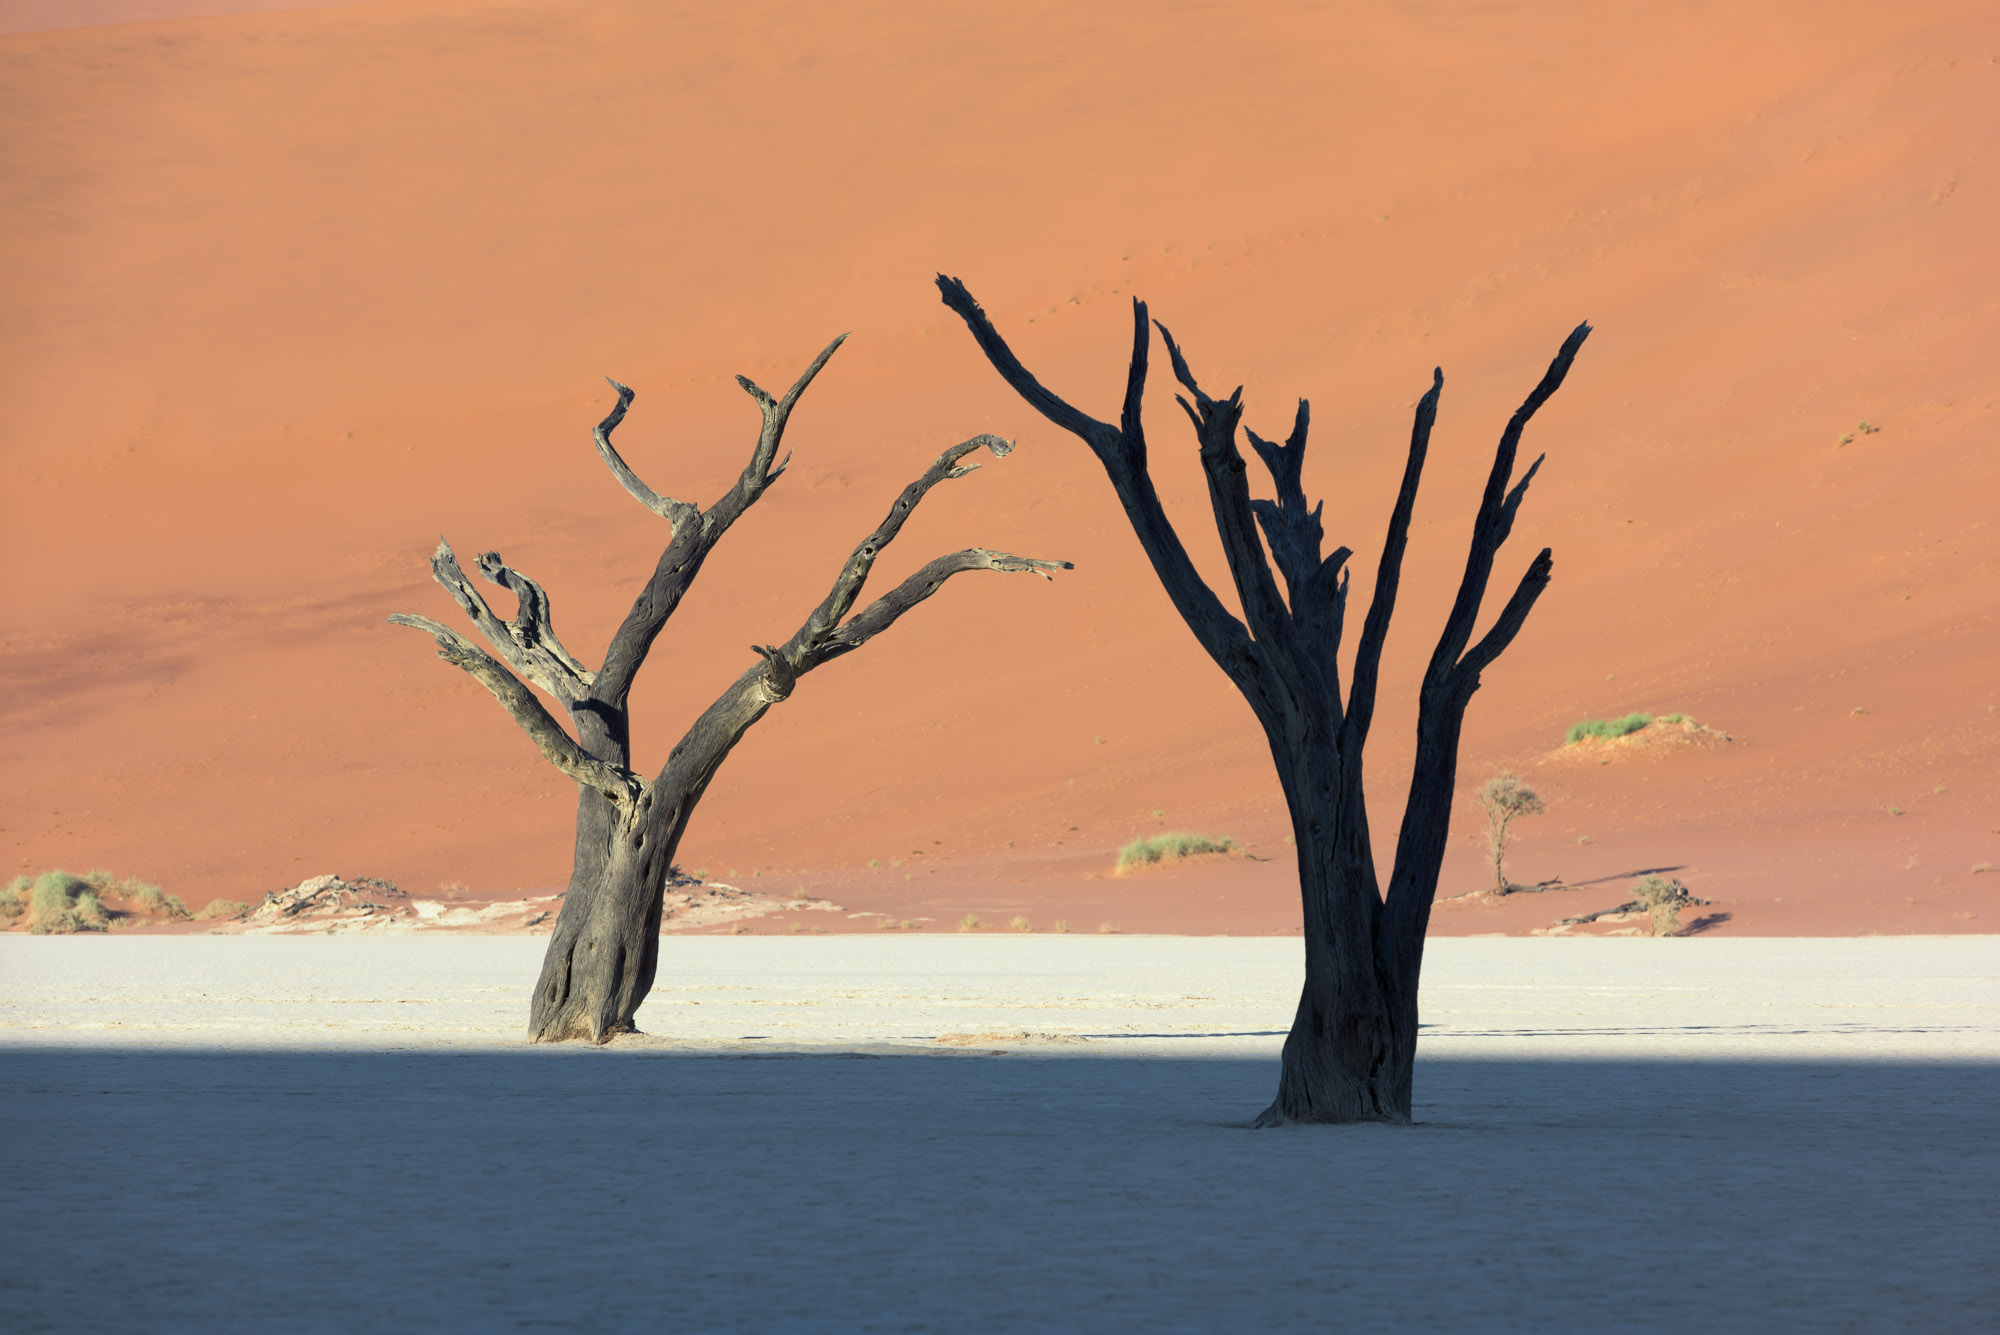 Dead Acacia Trees and Red Dune in Deadvlei, Sussusvlei, Namibia